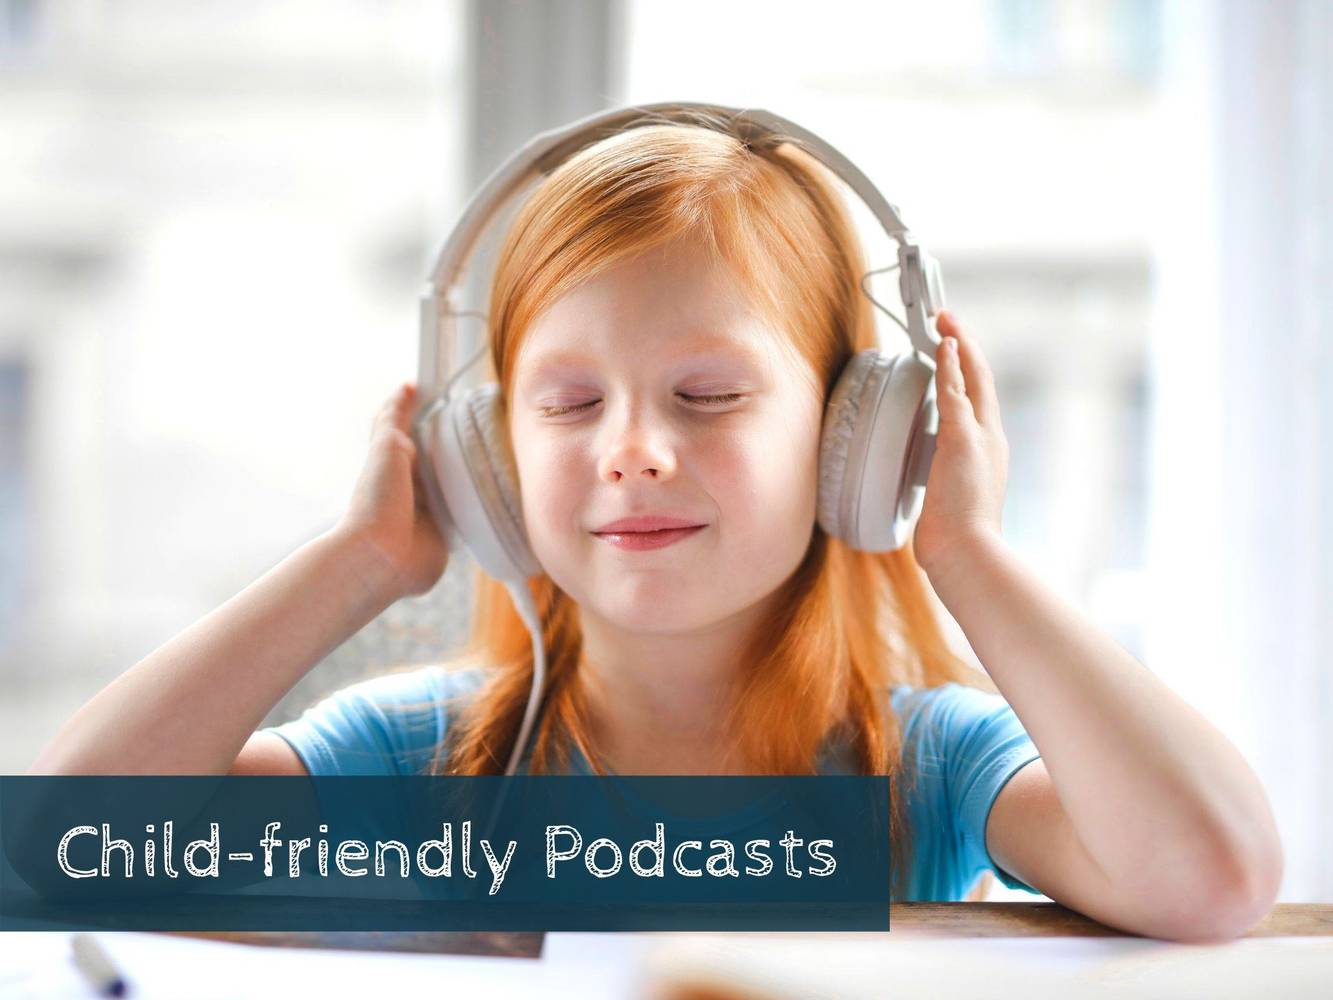 Listen To Podcasts